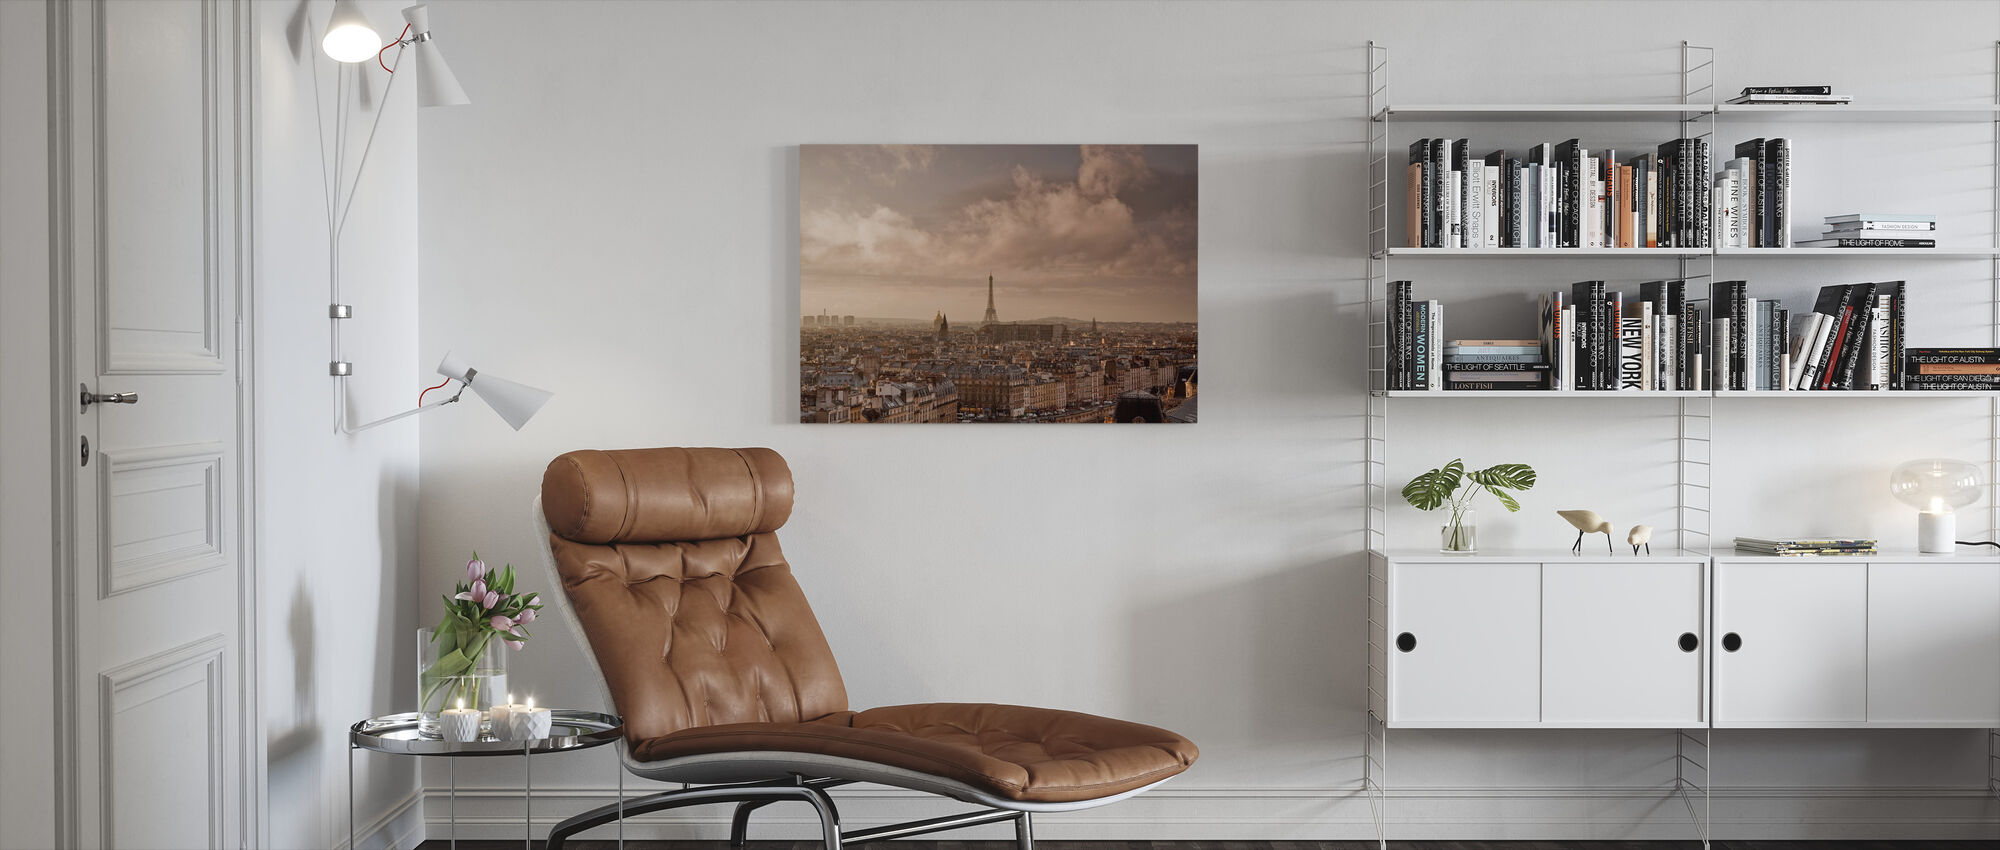 Soft Clouds Sweeping by Paris - Canvas print - Living Room